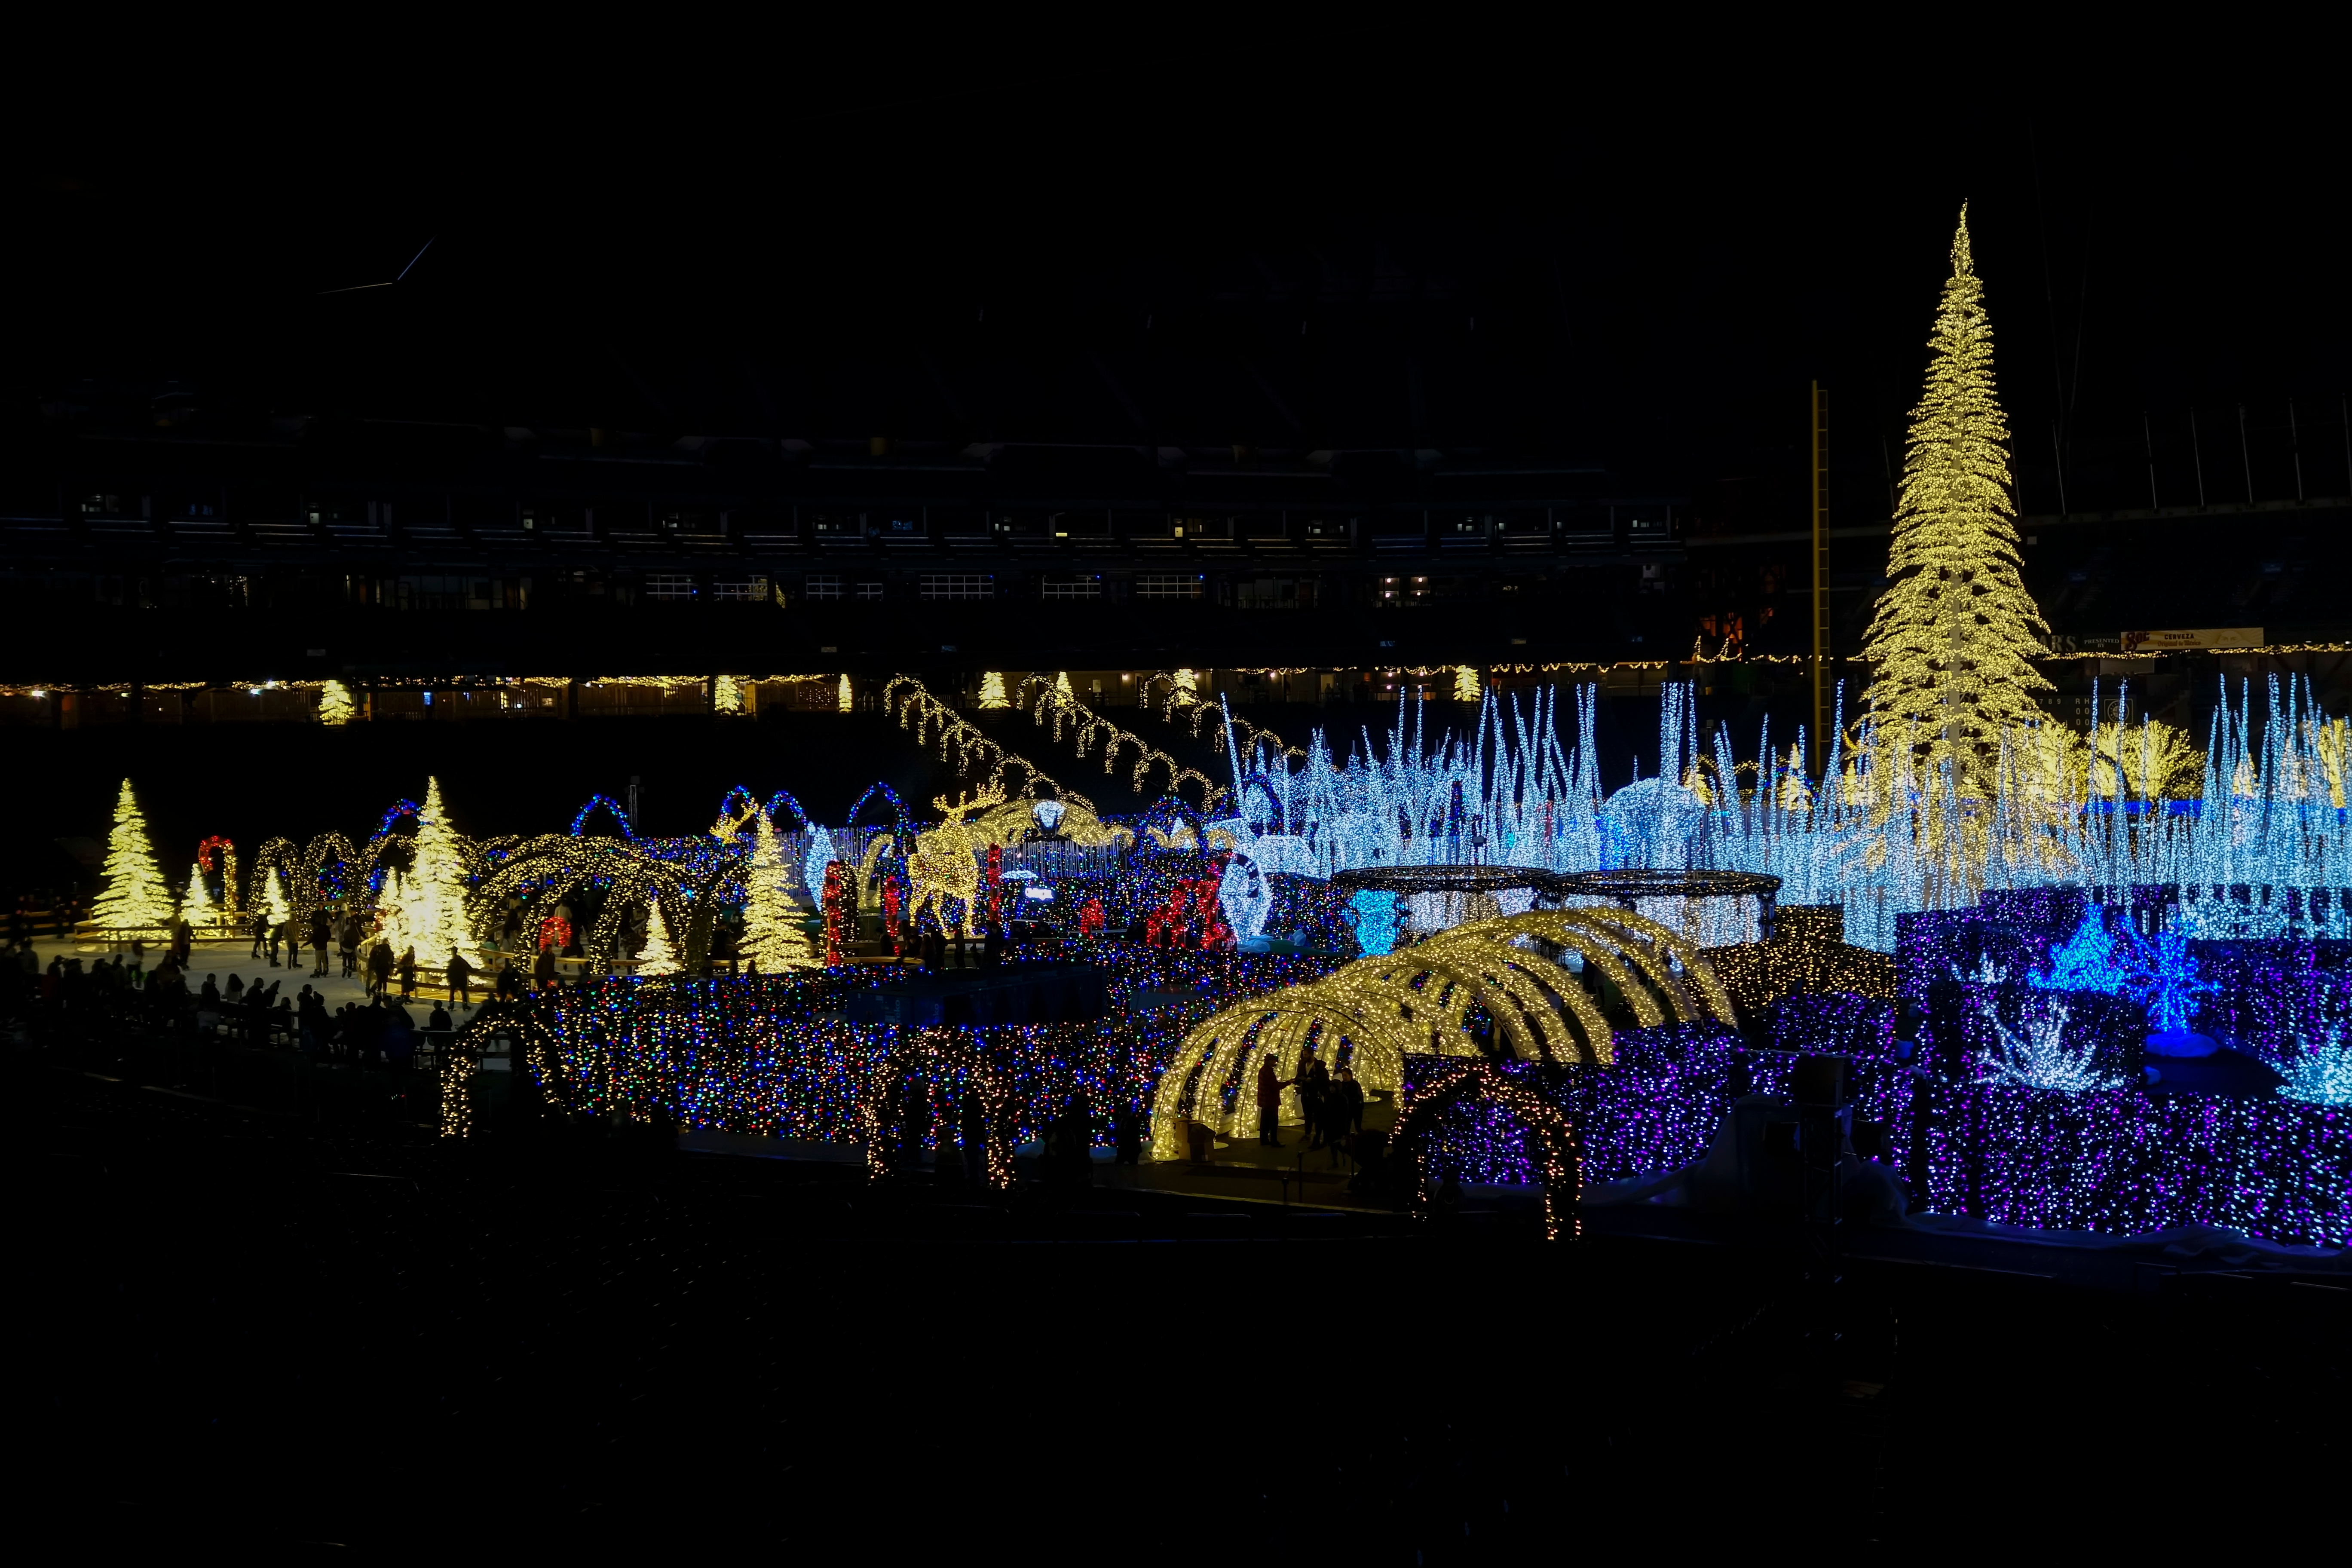 An elaborate light display, including a corridor of arches lit in white, a large christmas tree lit in white to the right surrounded by light blue lights spiking up from the ground,, and smaller white-lit christmas trees to the left.